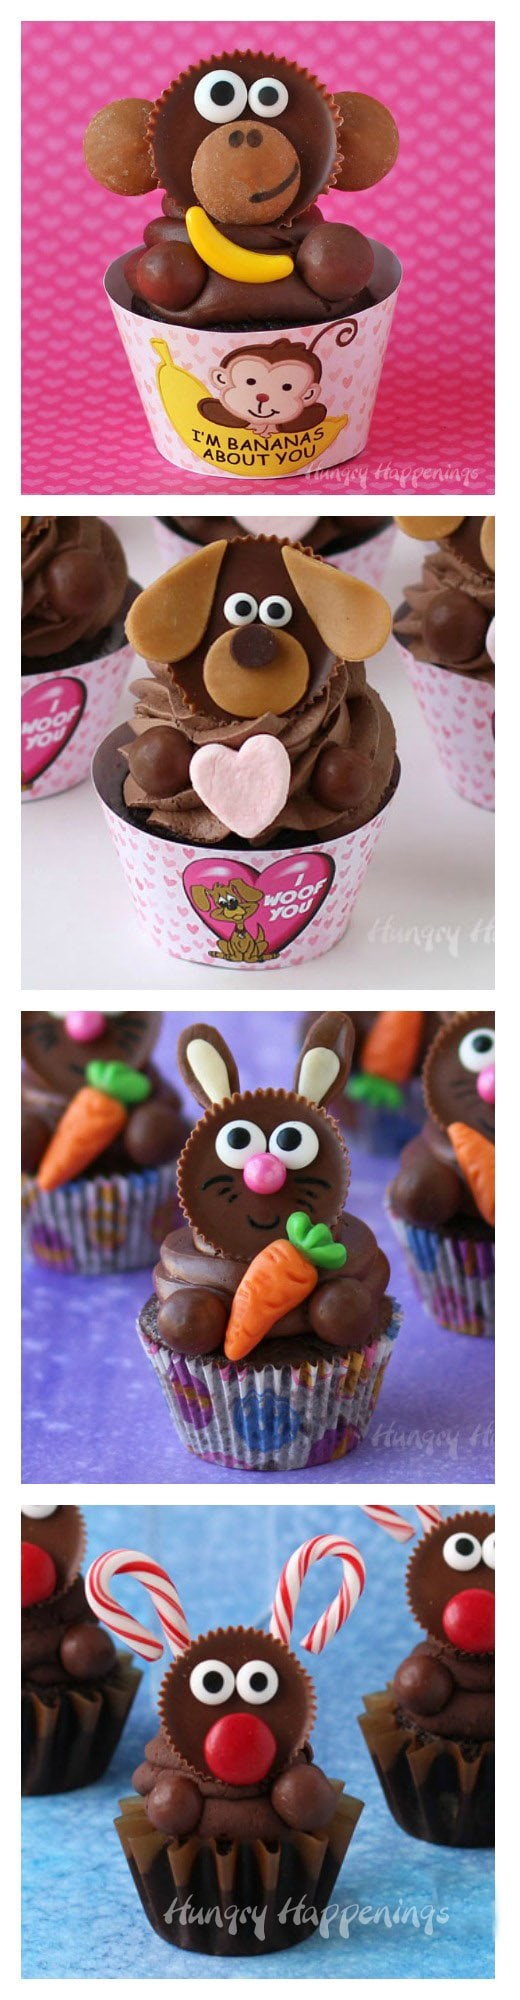 Turn Reese's Cups into adorably cute cupcakes. Make Monkeys, Puppies, Bunnies, and Reindeer. See how at HungryHappenings.com.